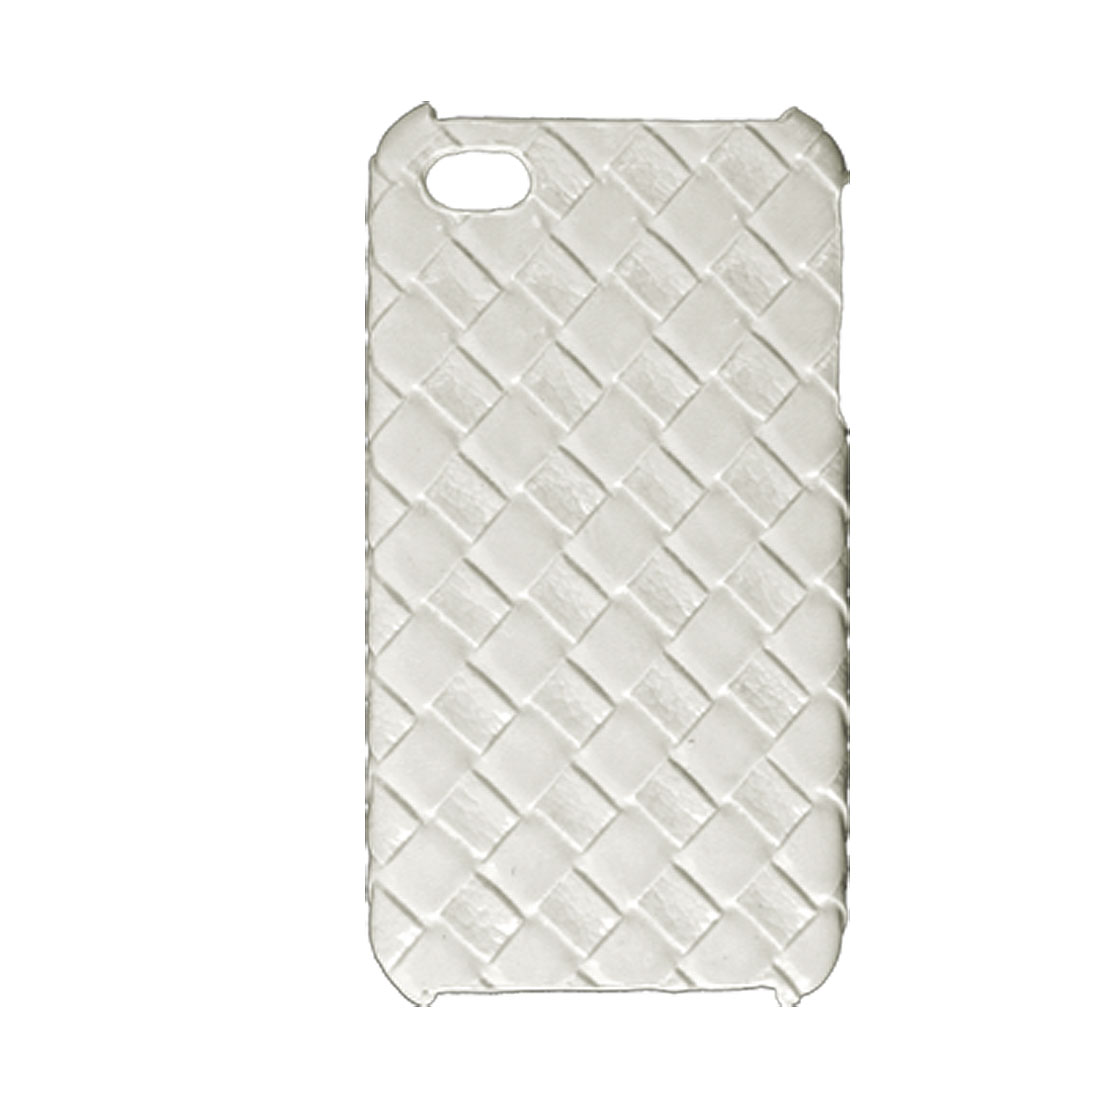 Woven Print Faux Leather Coated Hard Back Case White for iPhone 4 4G